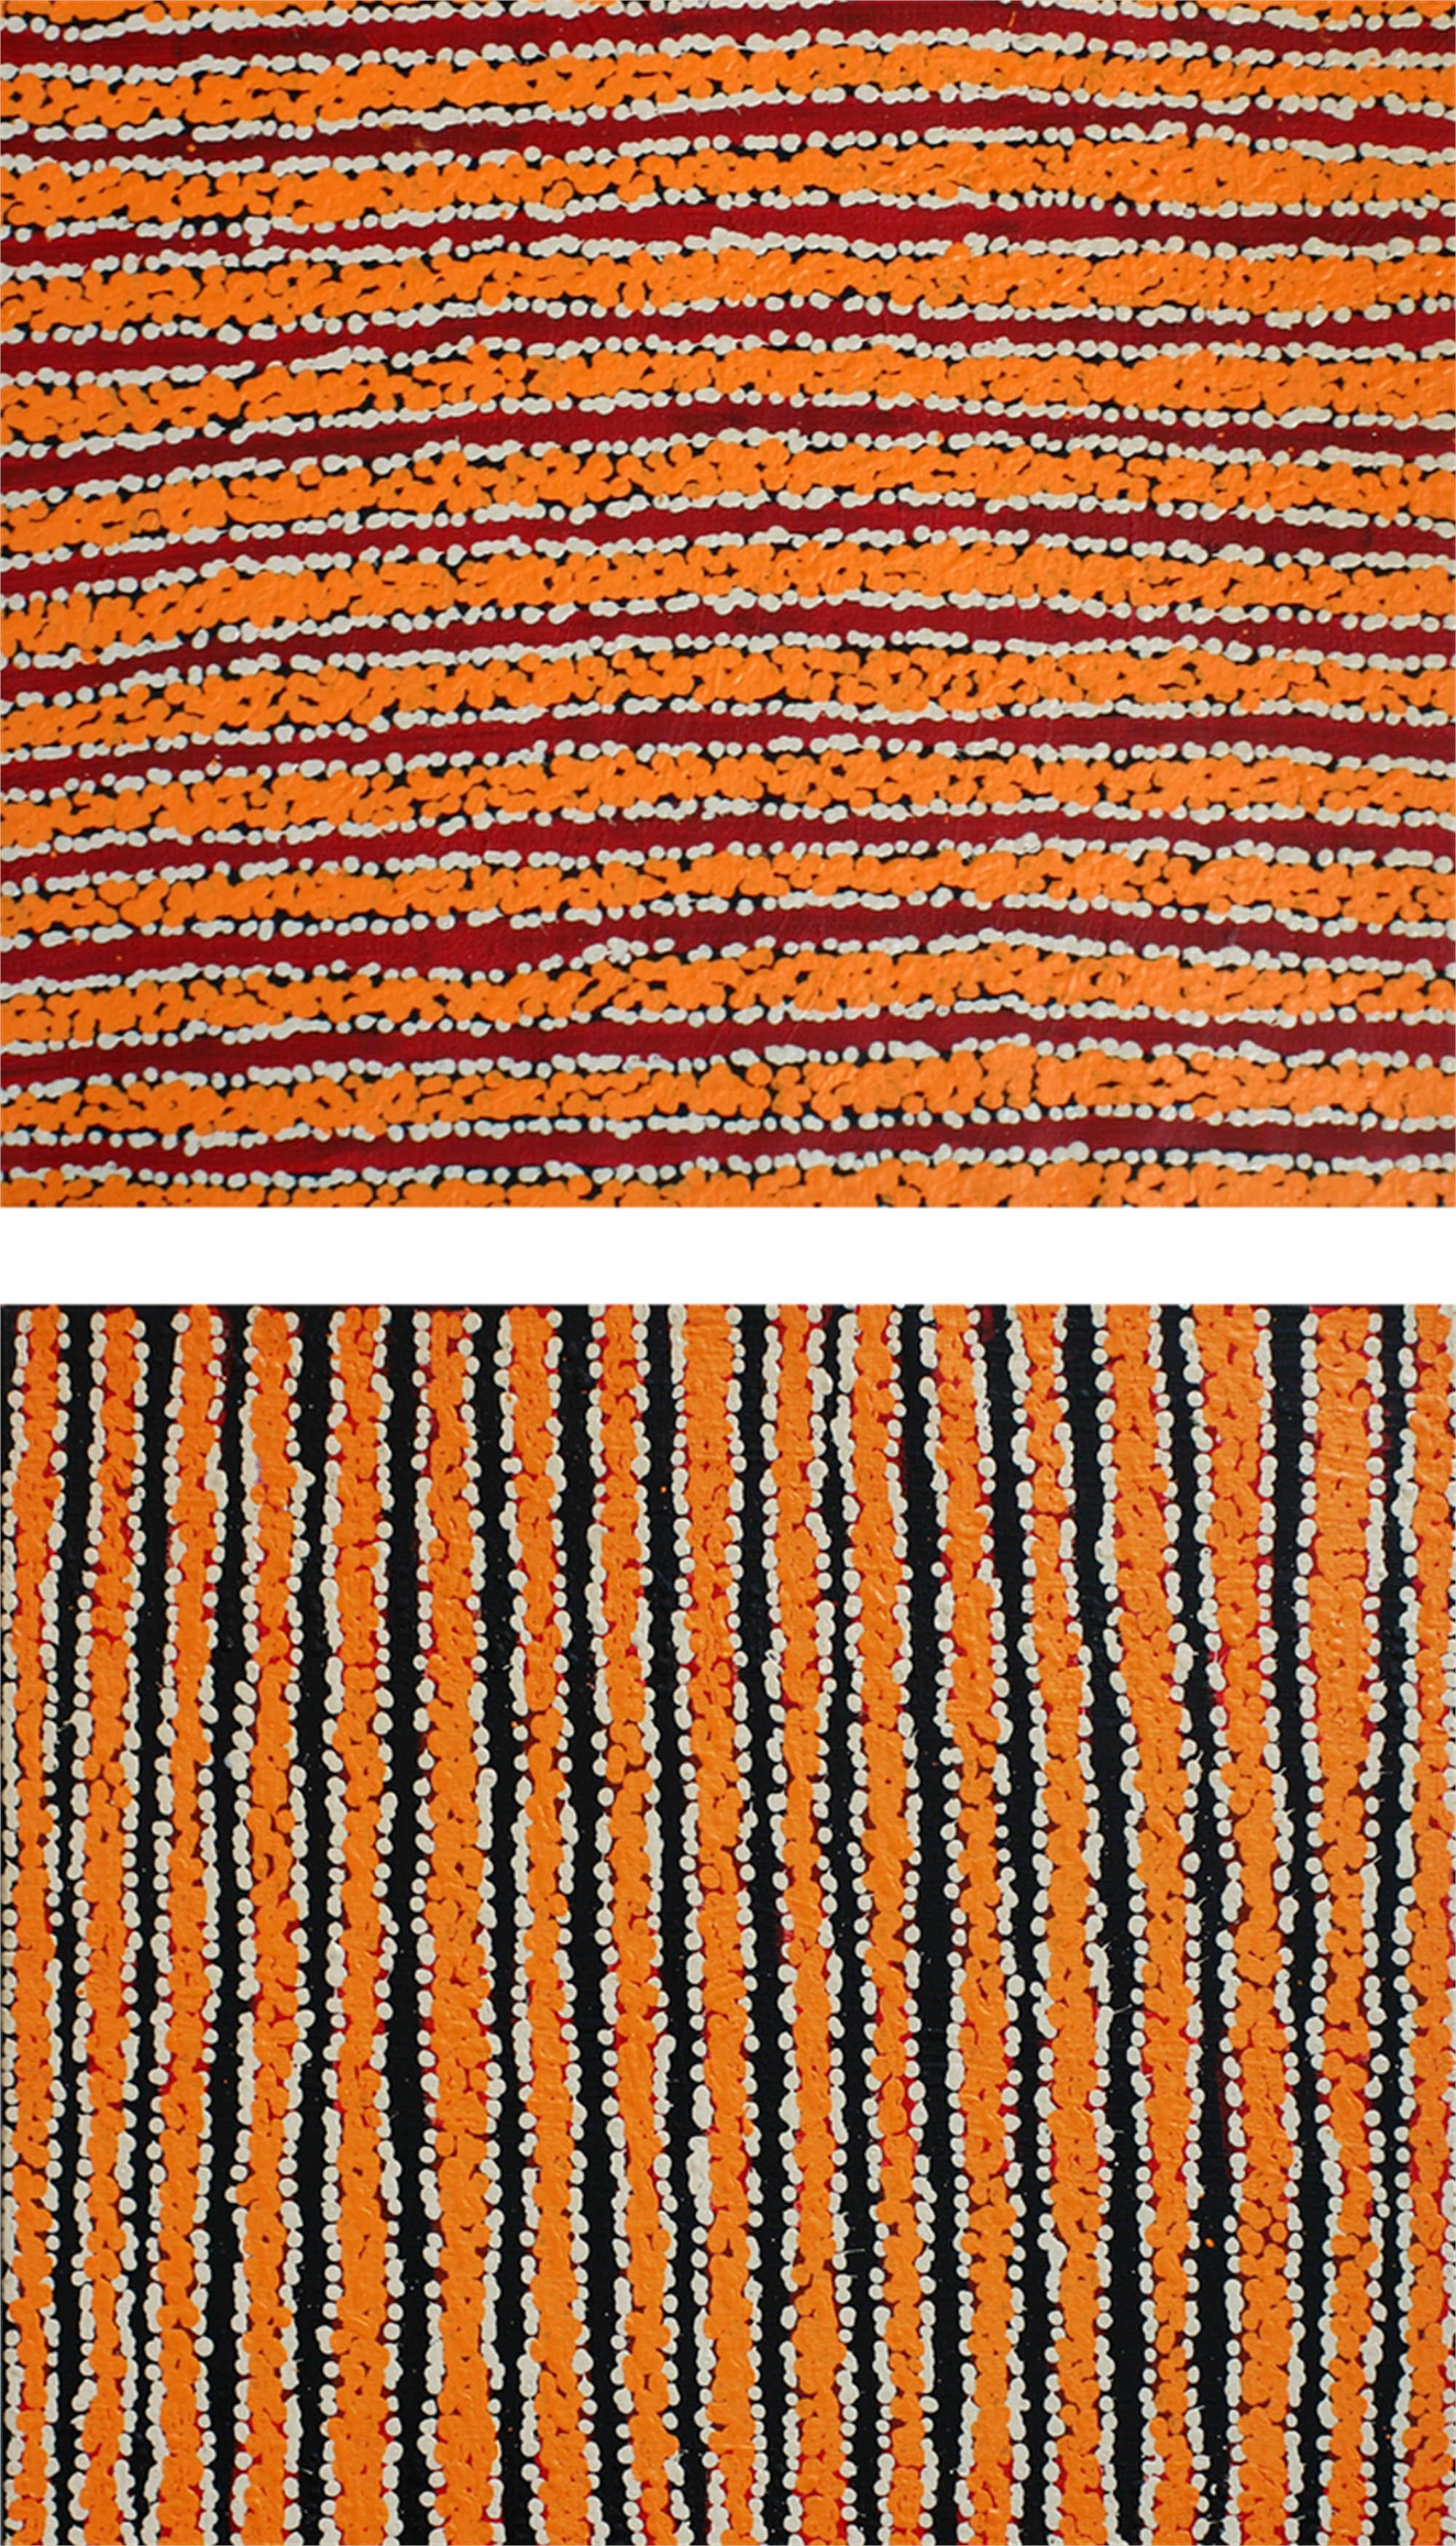 Tjukurla (My Country) - Tali by Australian Aboriginal Artists